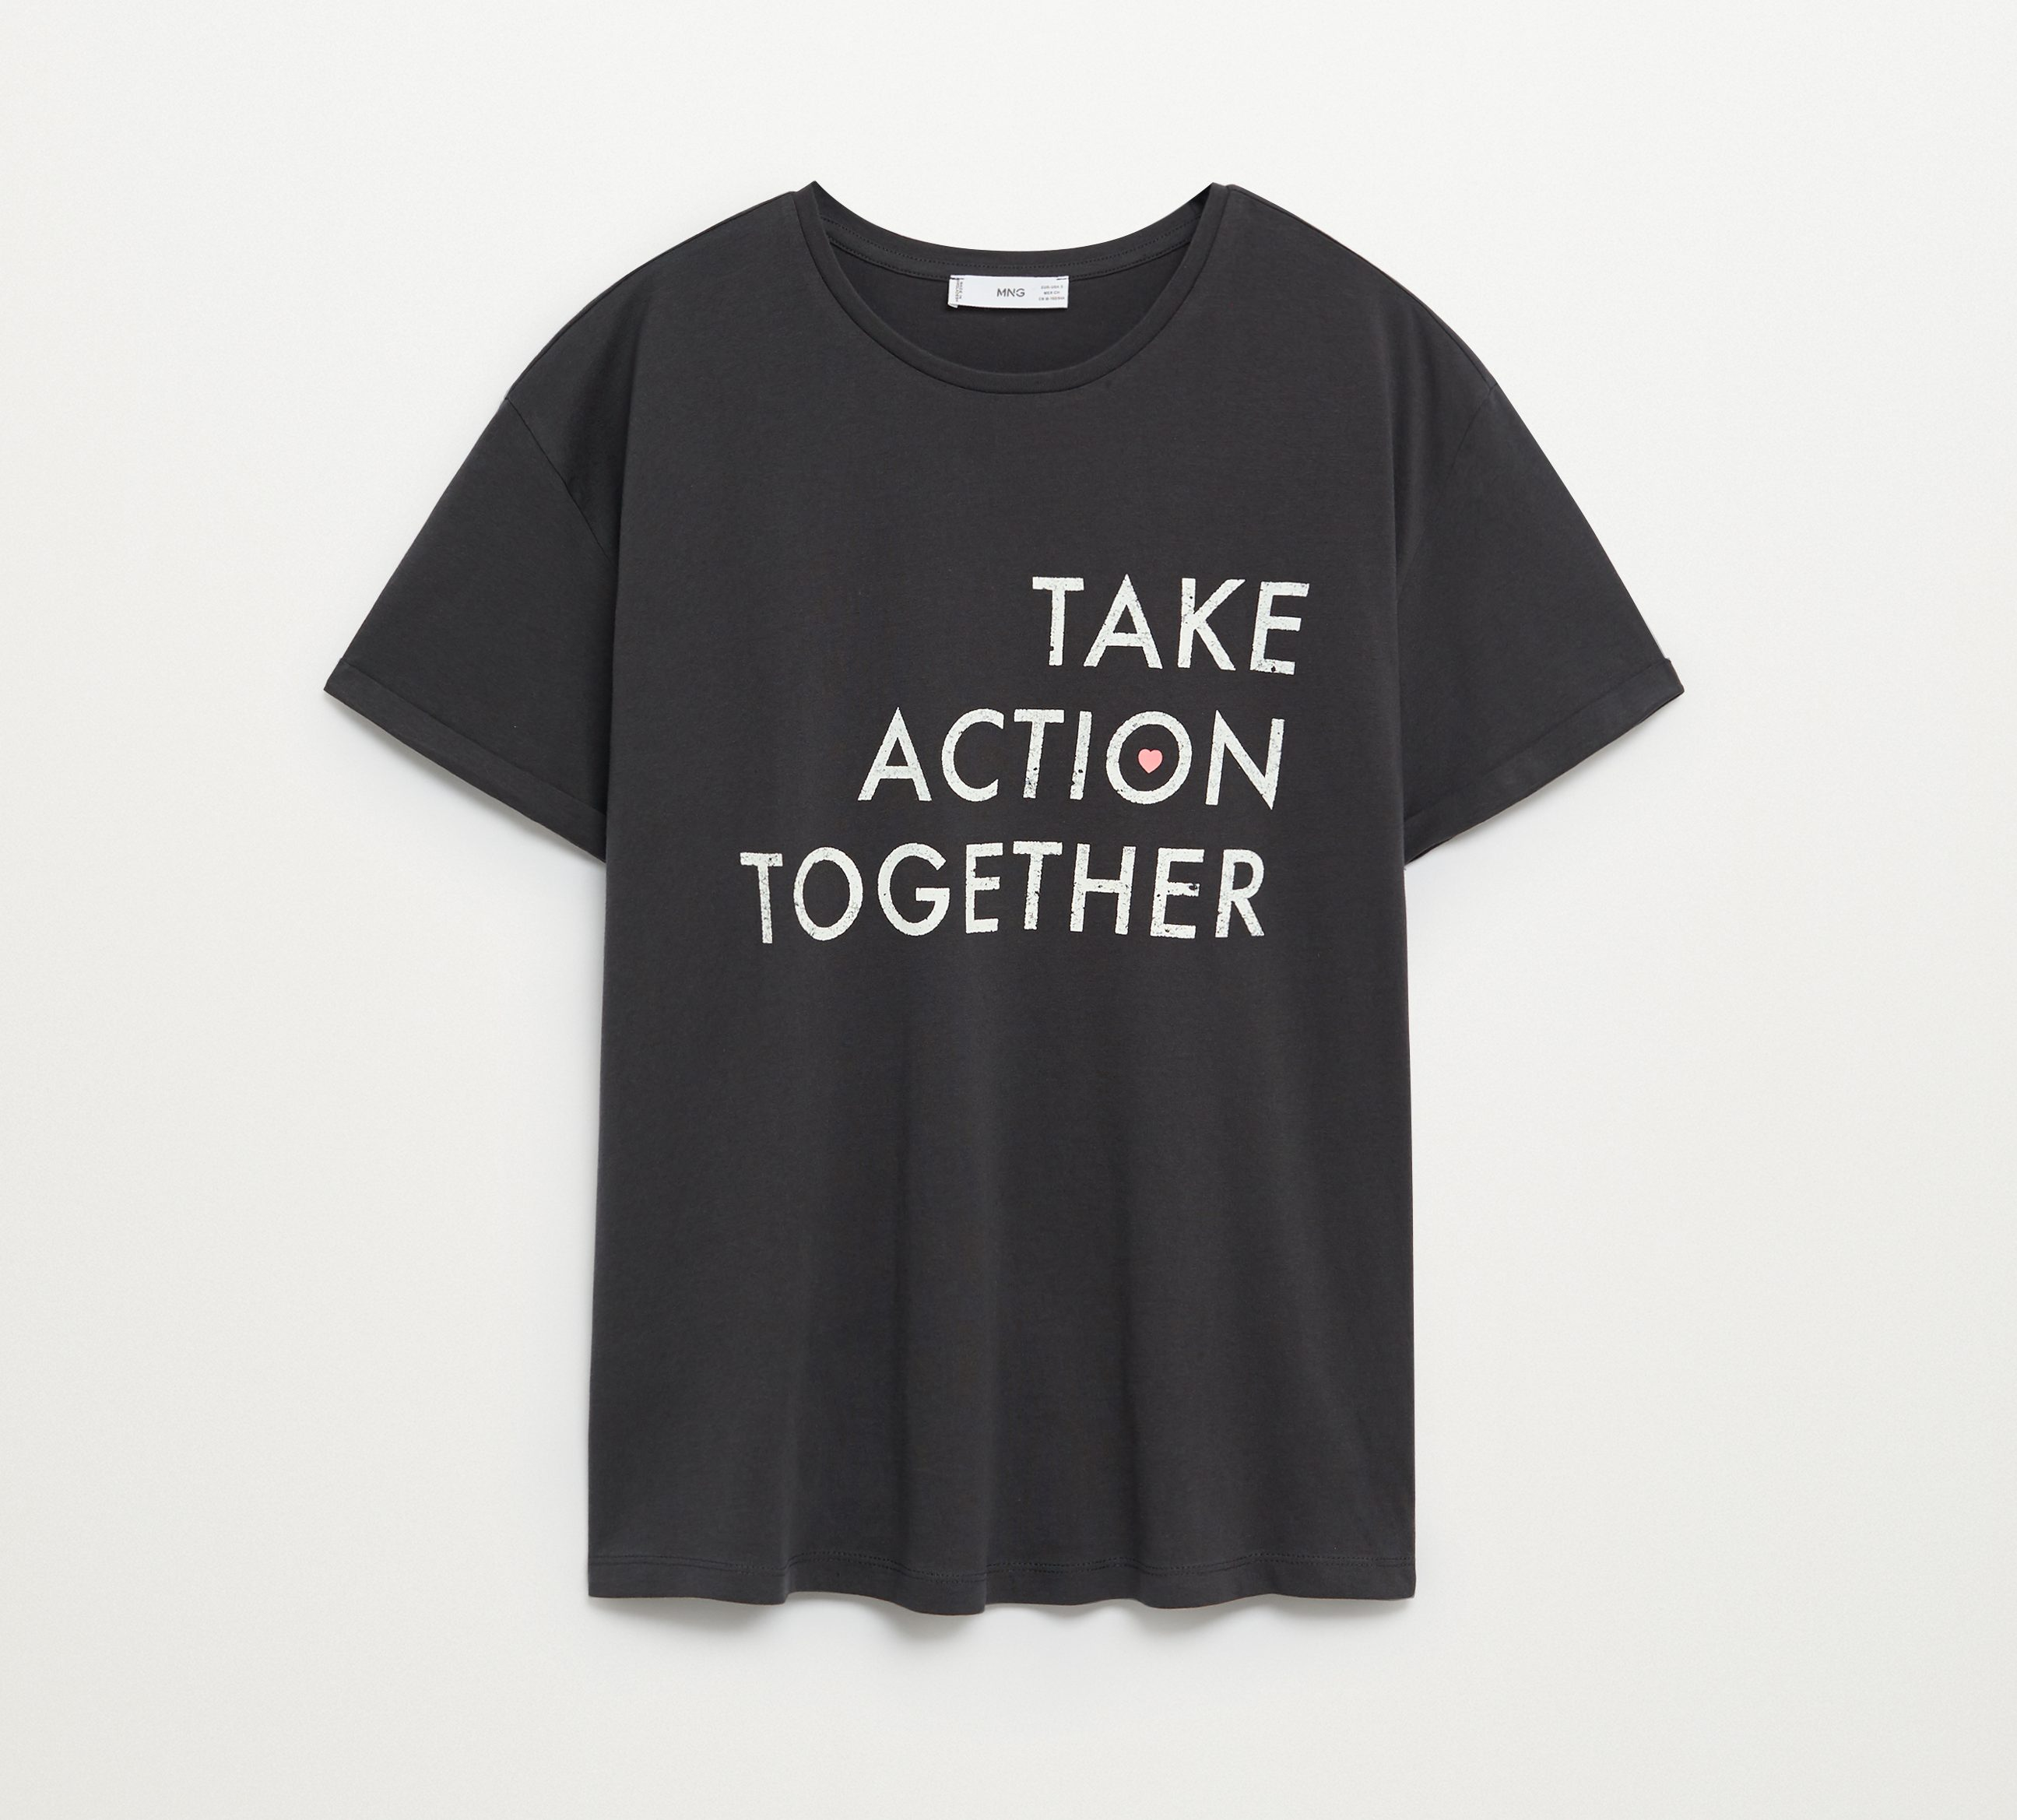 Fashion Brands Give Back for Breast Cancer Awareness Month 2020